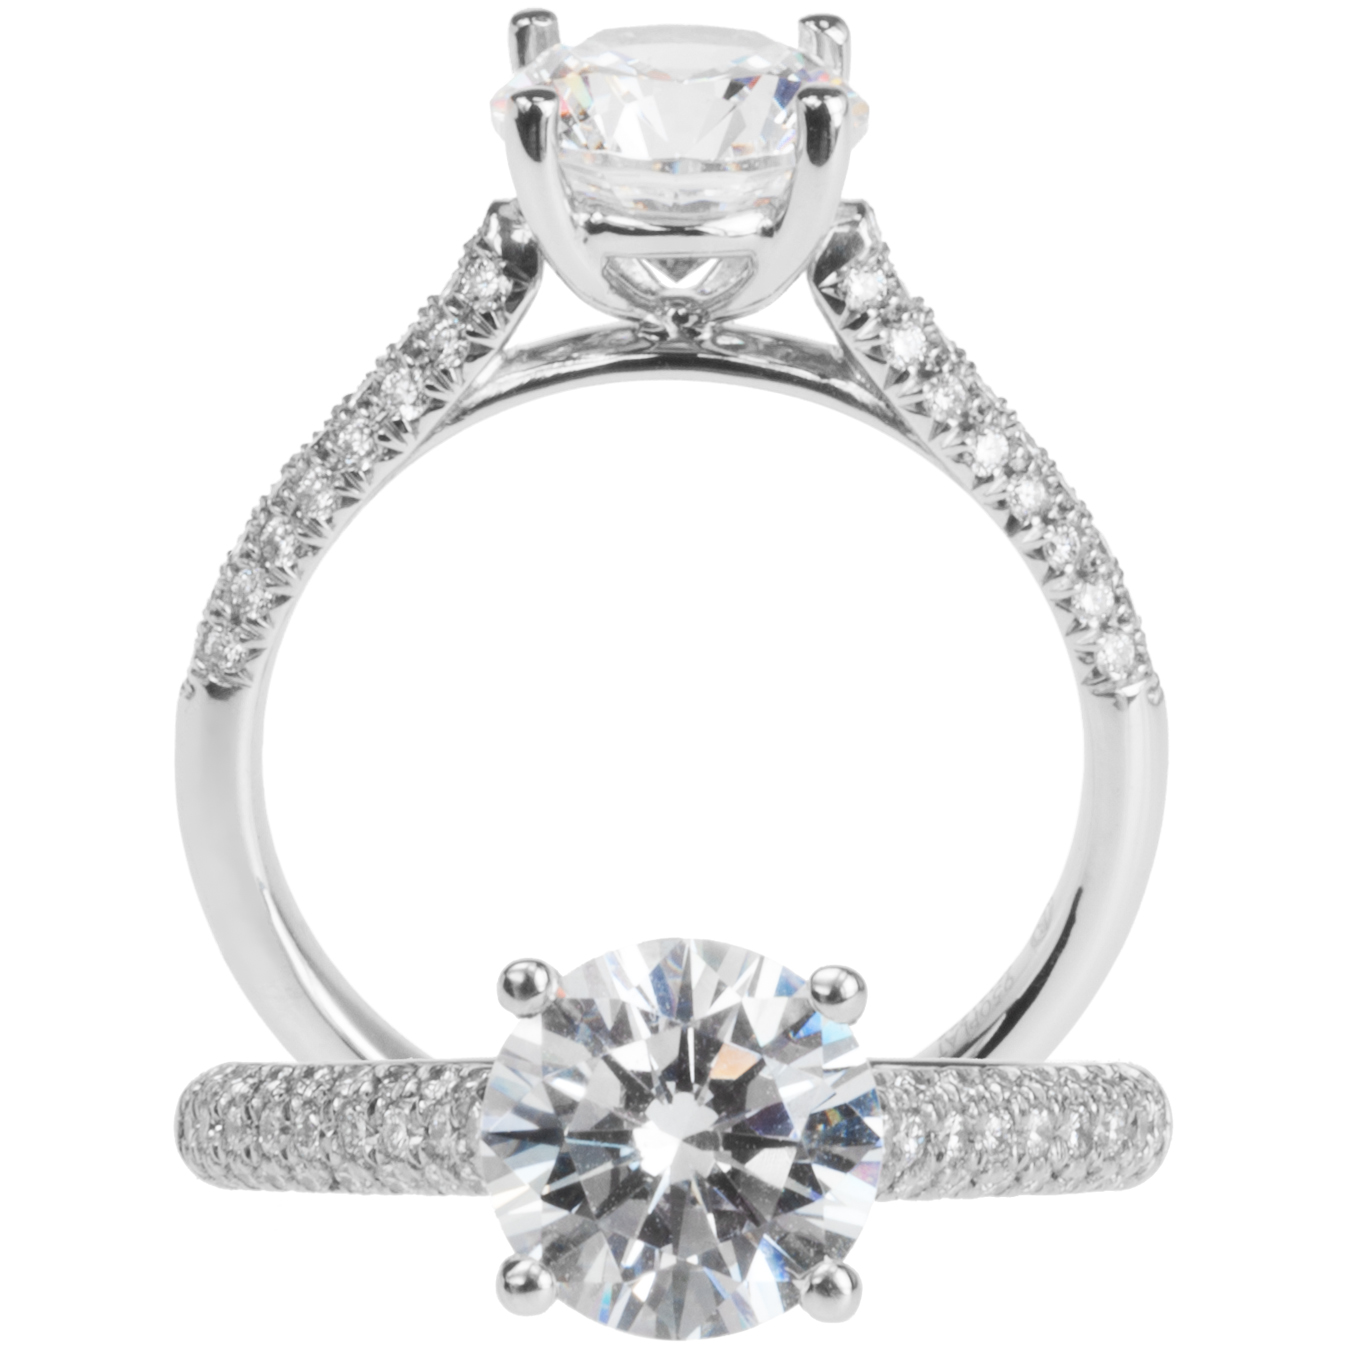 Three-Row Pave' Solitaire Semi-Mounting